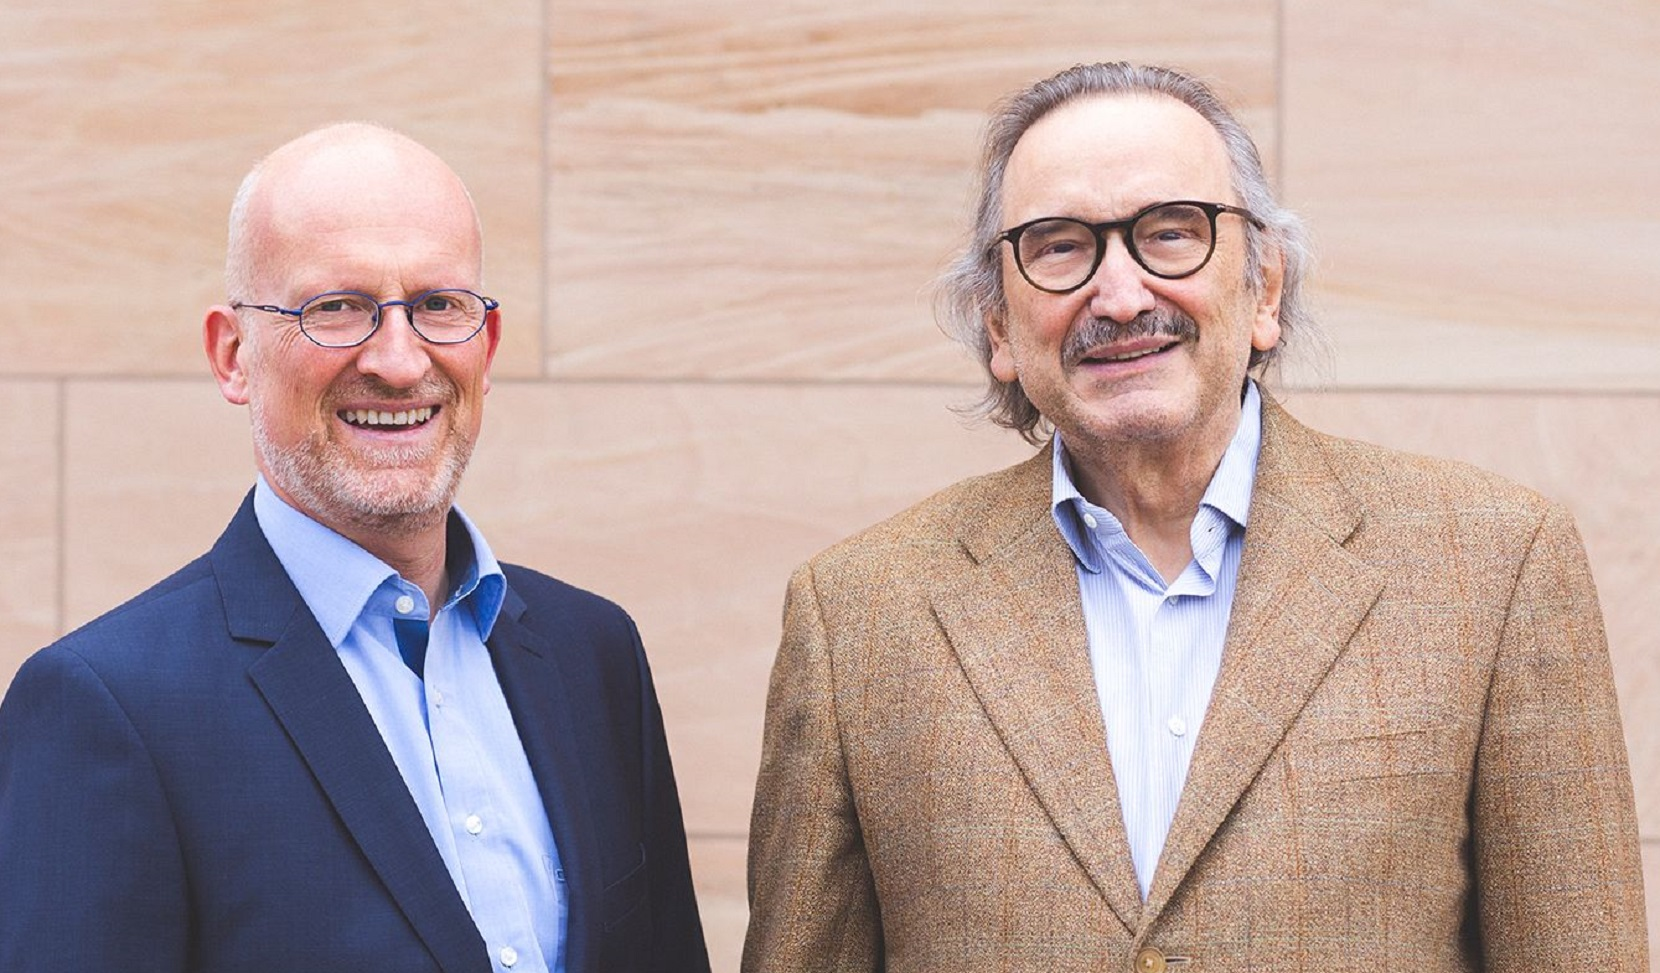 Dr. Reimar Schlingensiepen (left), the newly appointed CEO of AudioCure Pharma GmbH, takes over from Prof. Hans Rommelspacher, founder of the company, who continues as CSO.